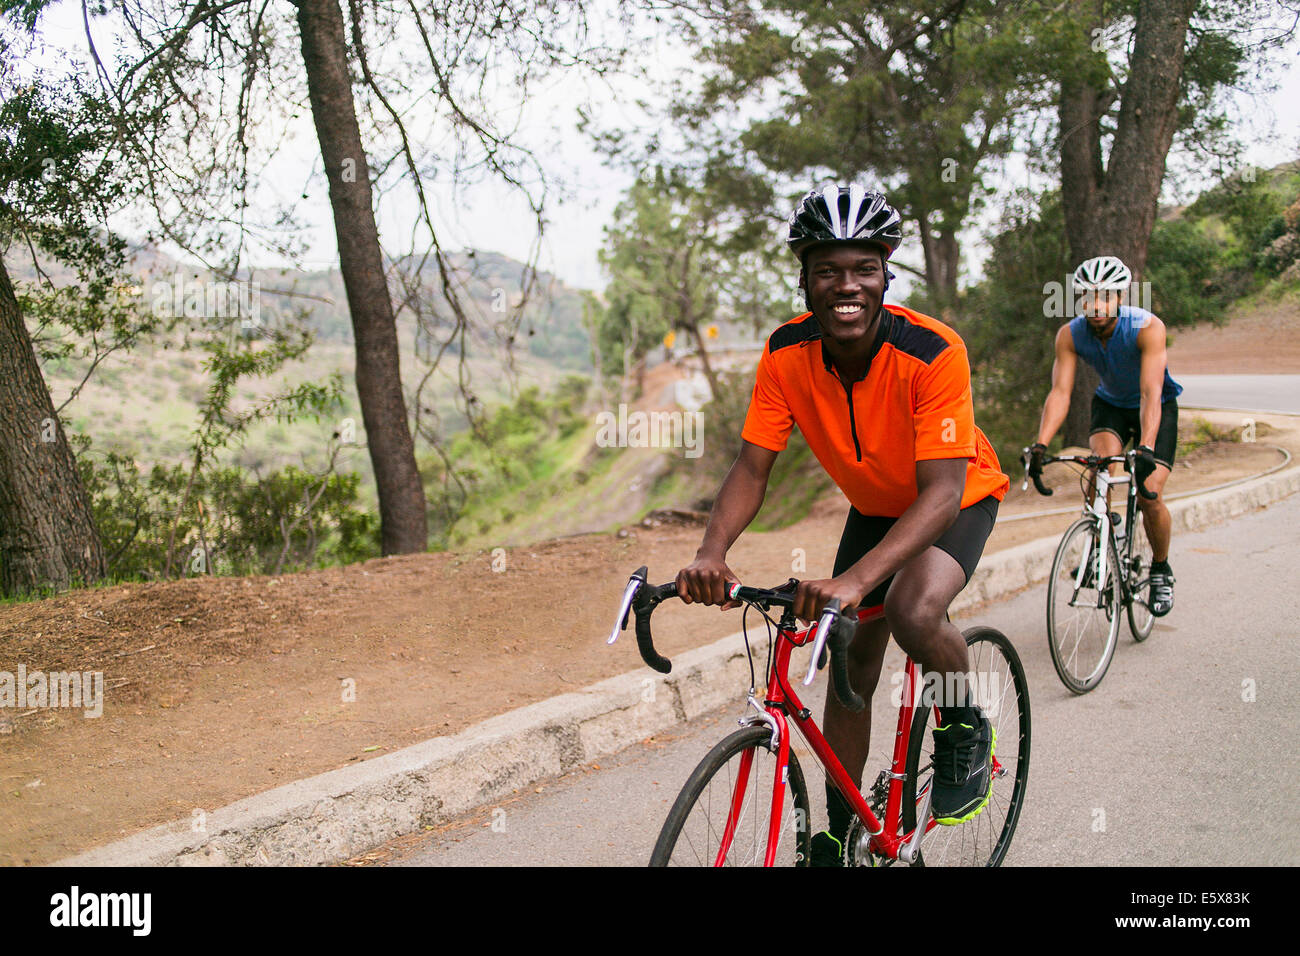 Cyclists on uphill road - Stock Image